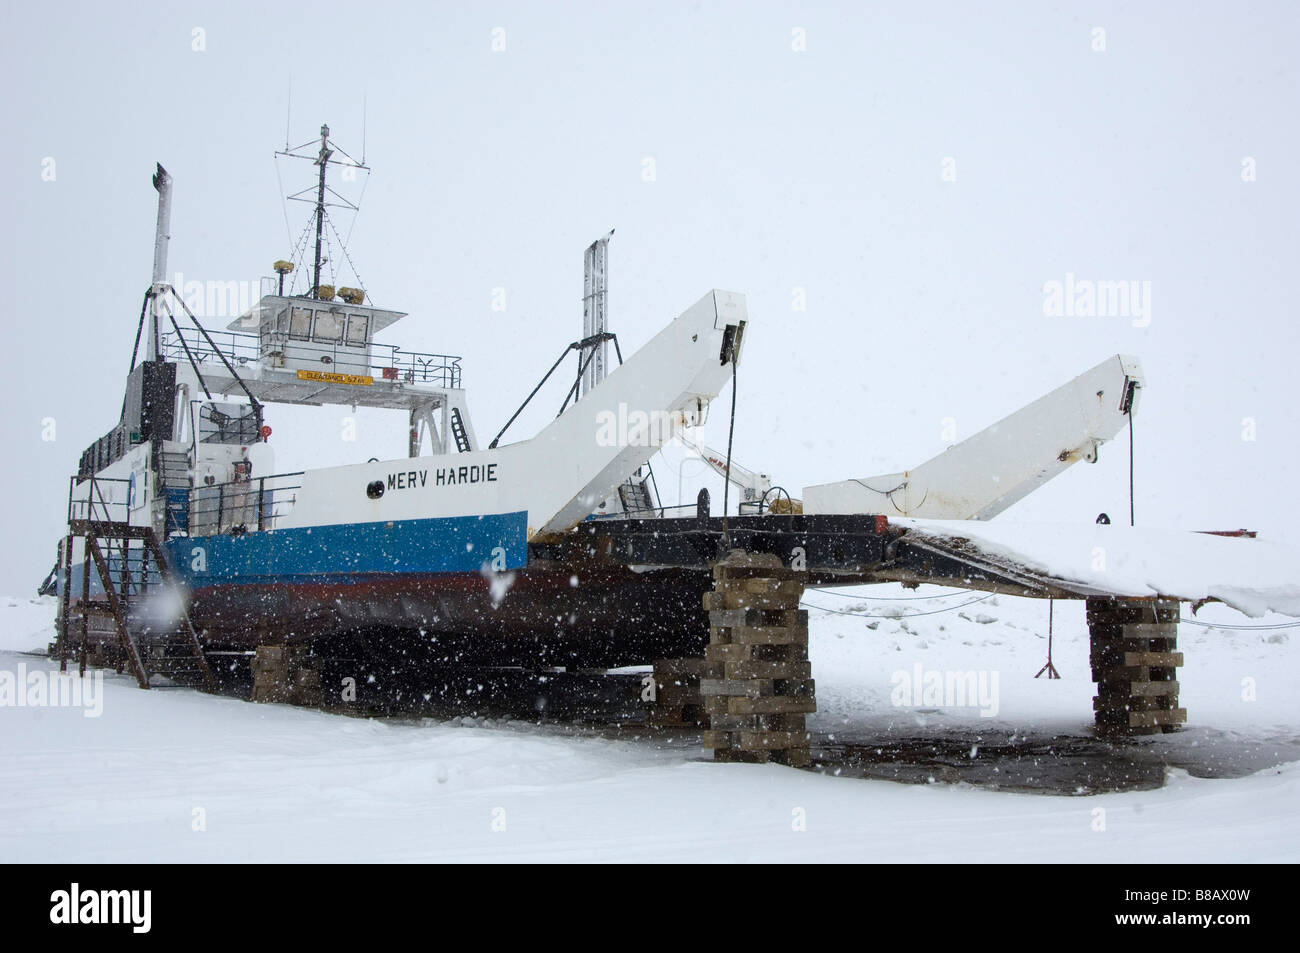 Merv Hardie Ferry, t Providence Mackenzie River crossing, Northwest Territories - Stock Image